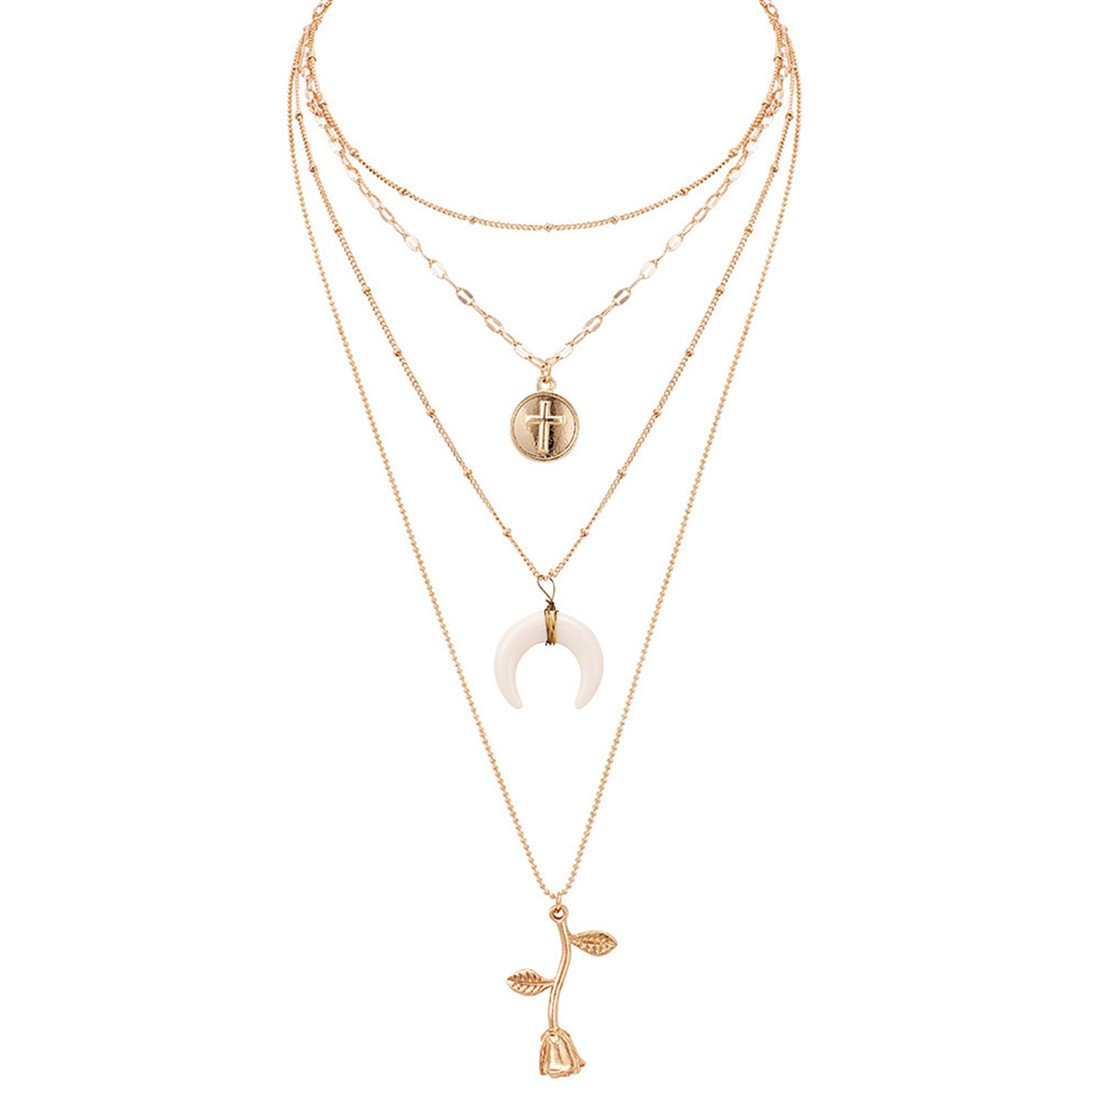 VWH Gold Jewelry Women's Hang Tag Moon Rose Flower Pendant Layered Necklace